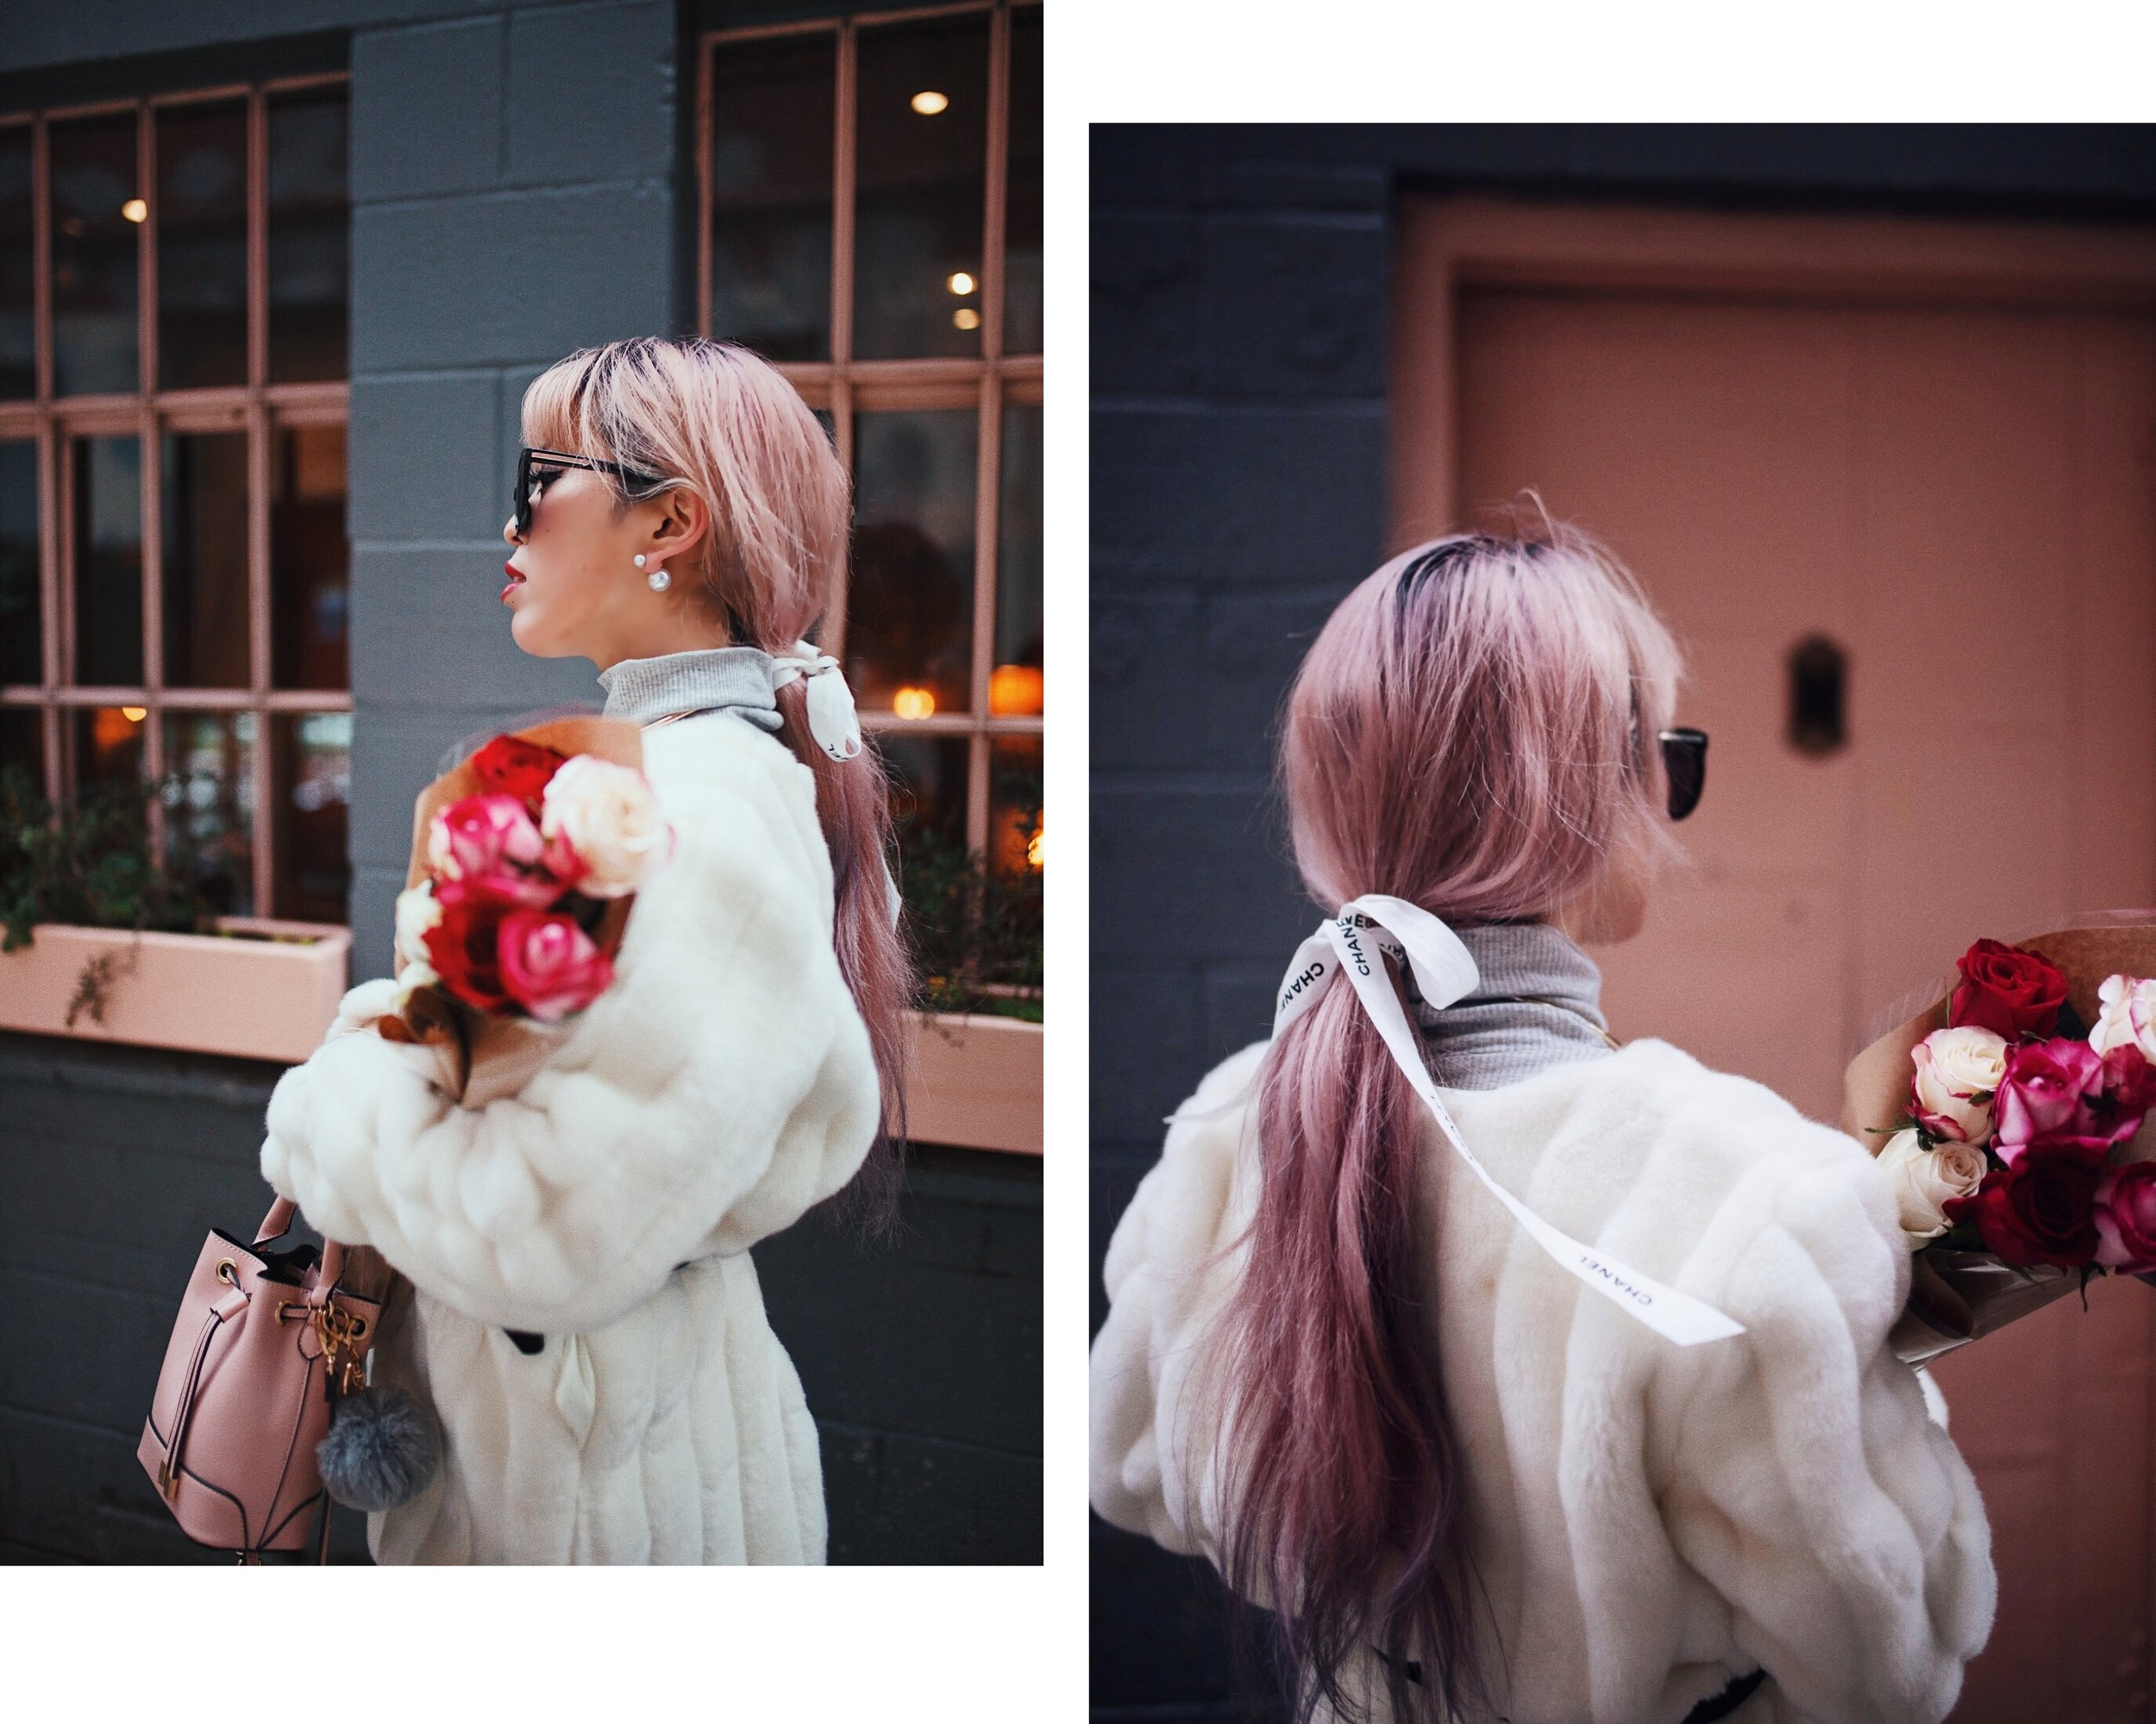 H&M Gray Turtleneck Sweater-ASOS high waisted skinny jean-EGO Grey Over the Knee Boots-While Faux Fur Coat-Forever 21 Pearl Belt & Pink Mini Basket Bag-Chanel Ribbon Hair-Valentine's Day-Rose bouquet-Pink Hair-Japanese-Seattle Style Fashion Blogger-AikA's Love Closet 2